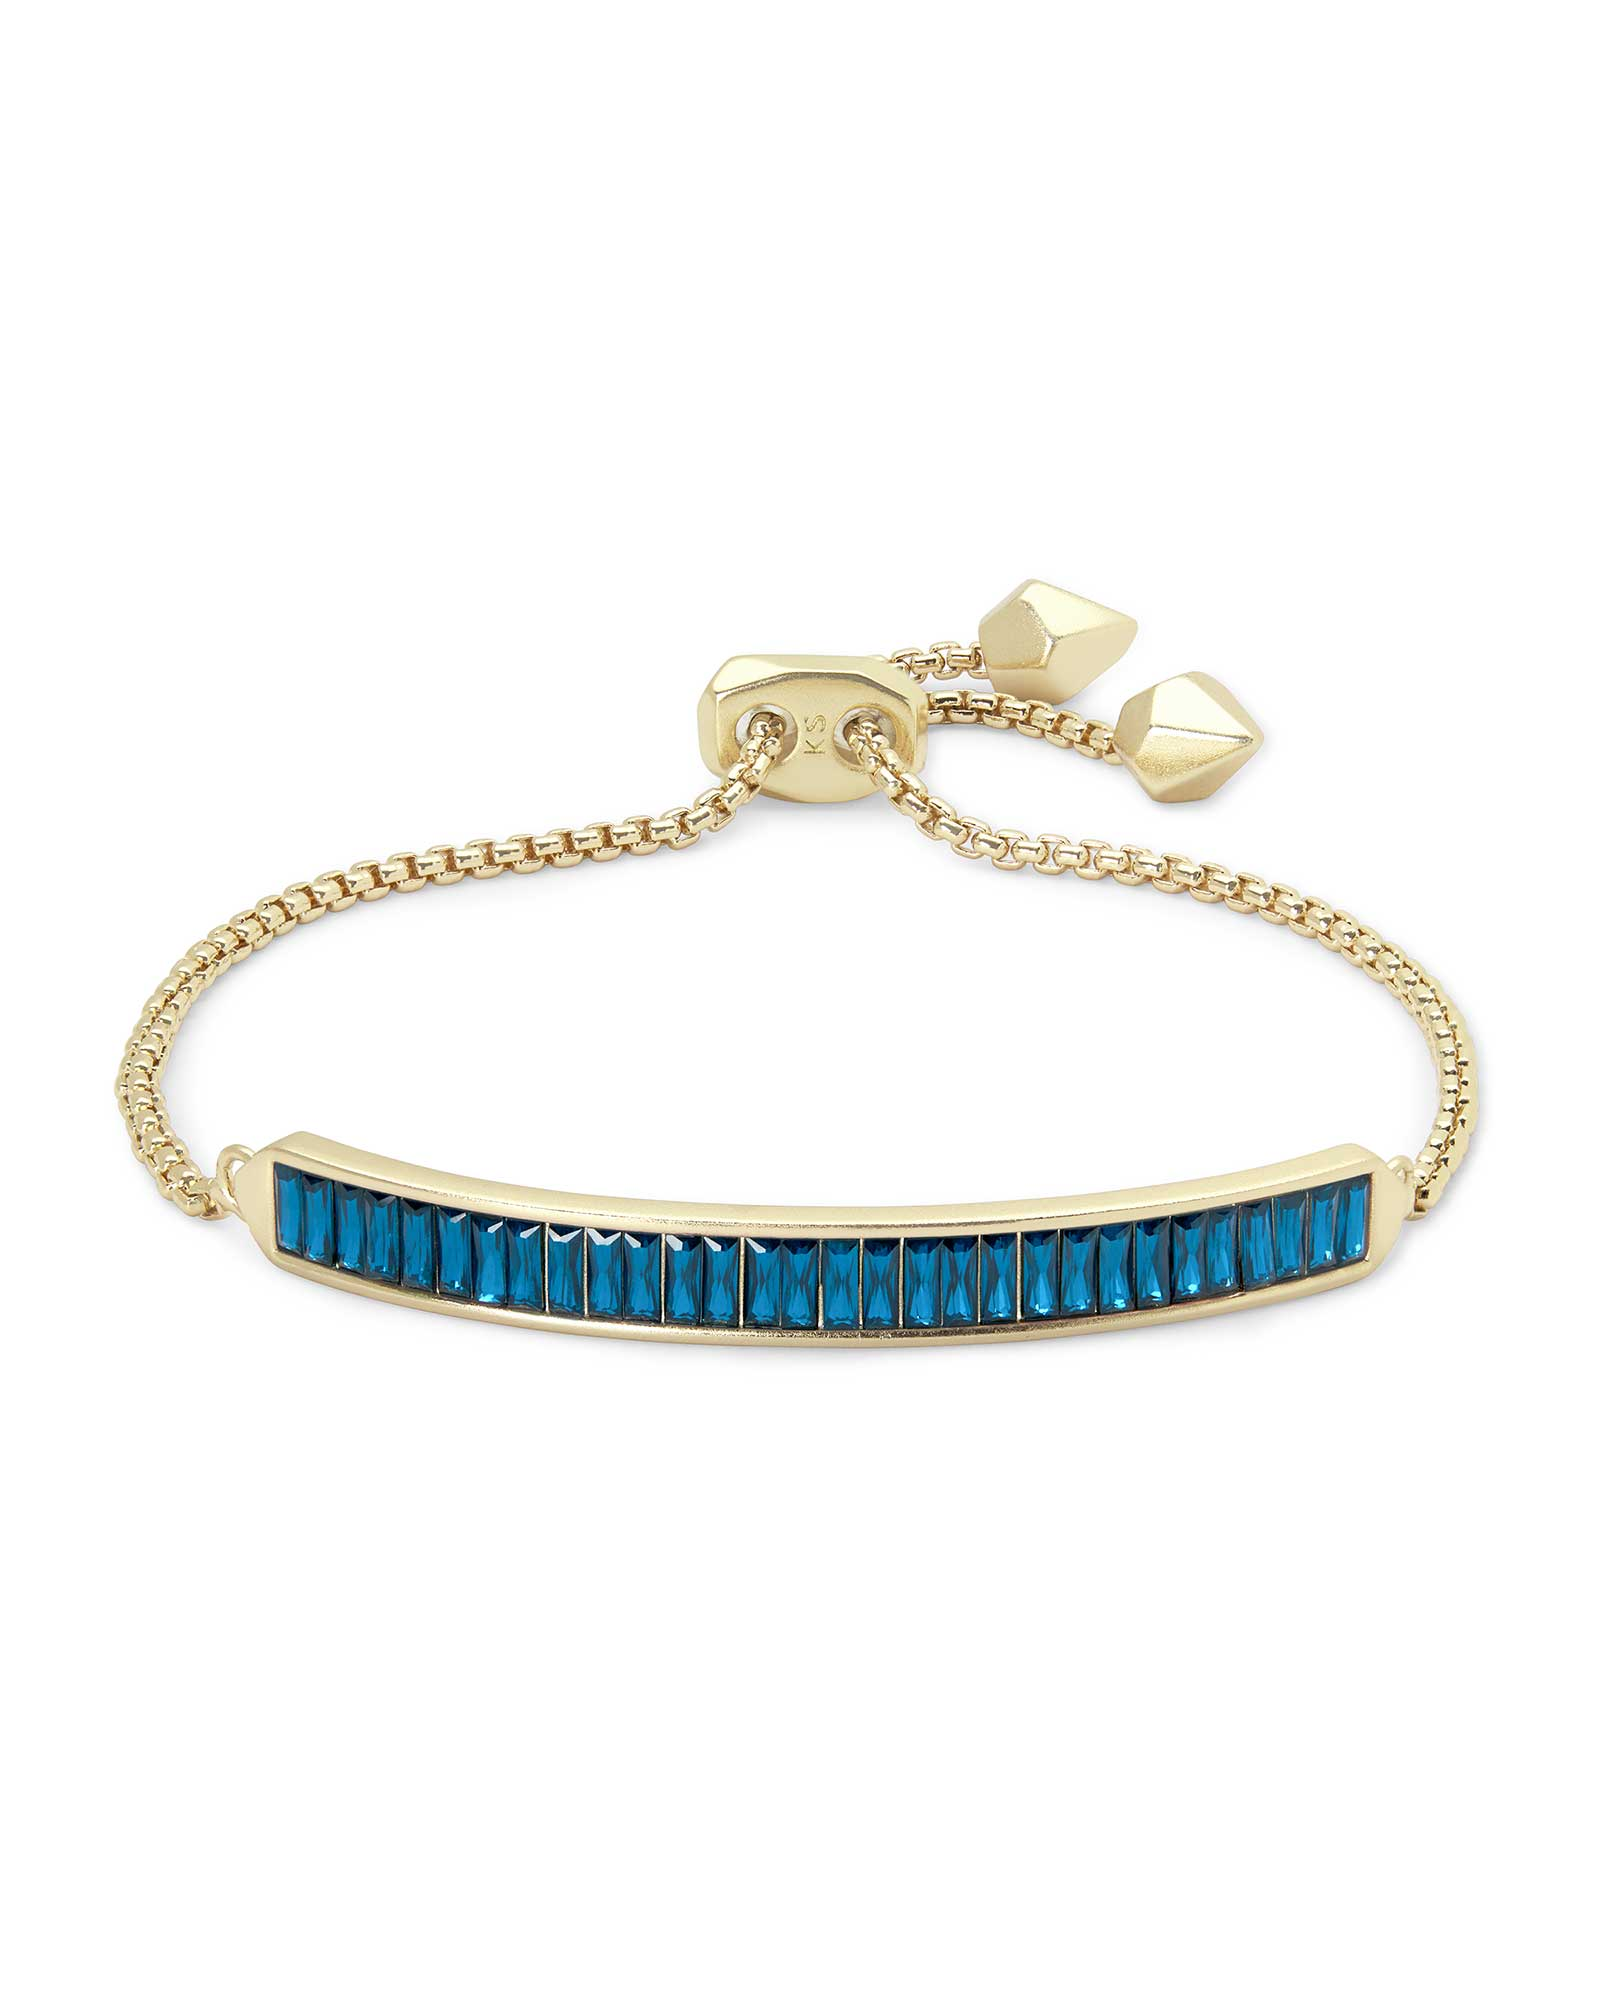 Jack Adjustable Chain Bracelet by Kendra Scott